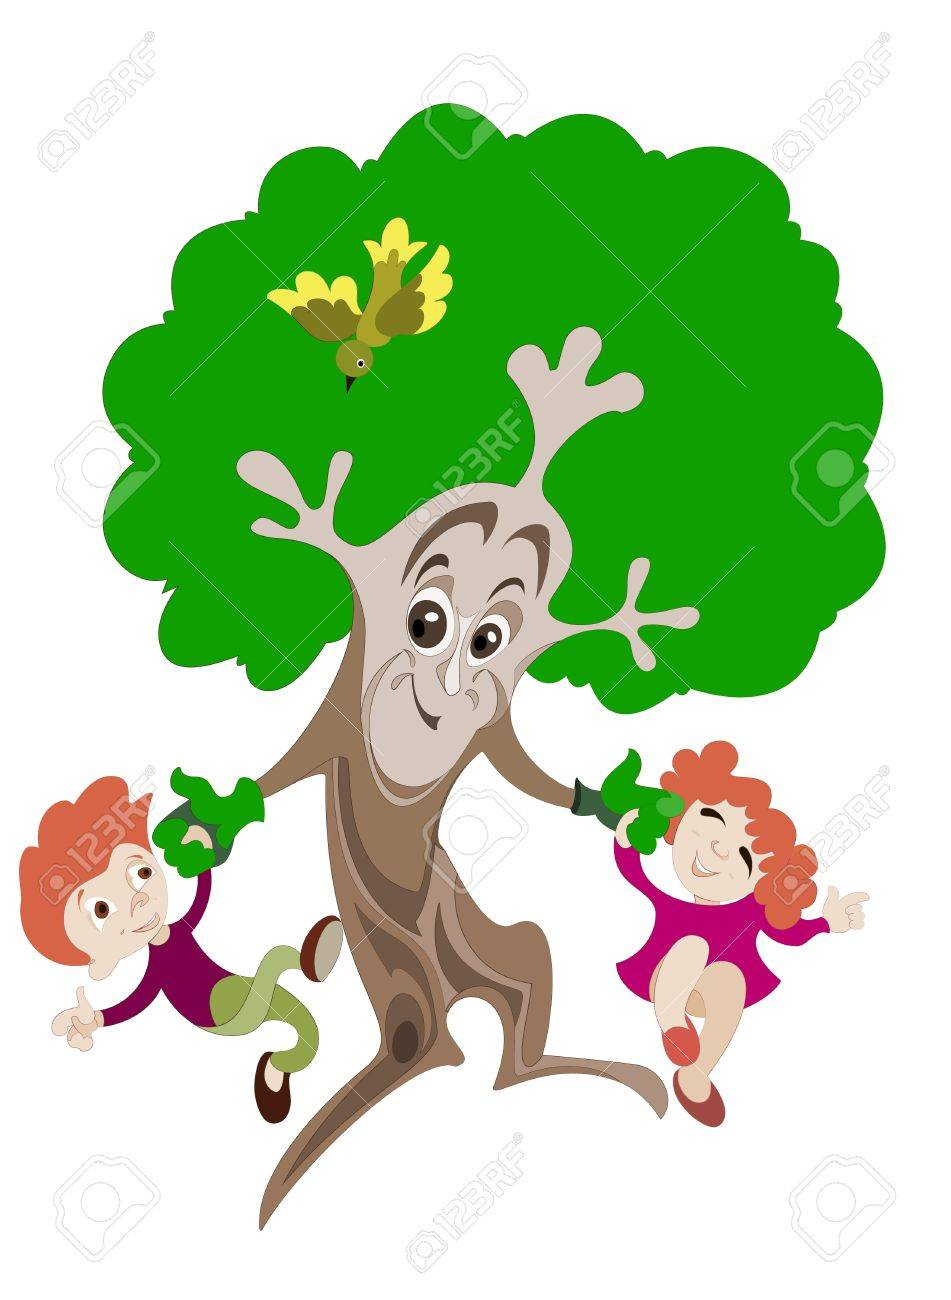 animated image of a tree which plays with two young children